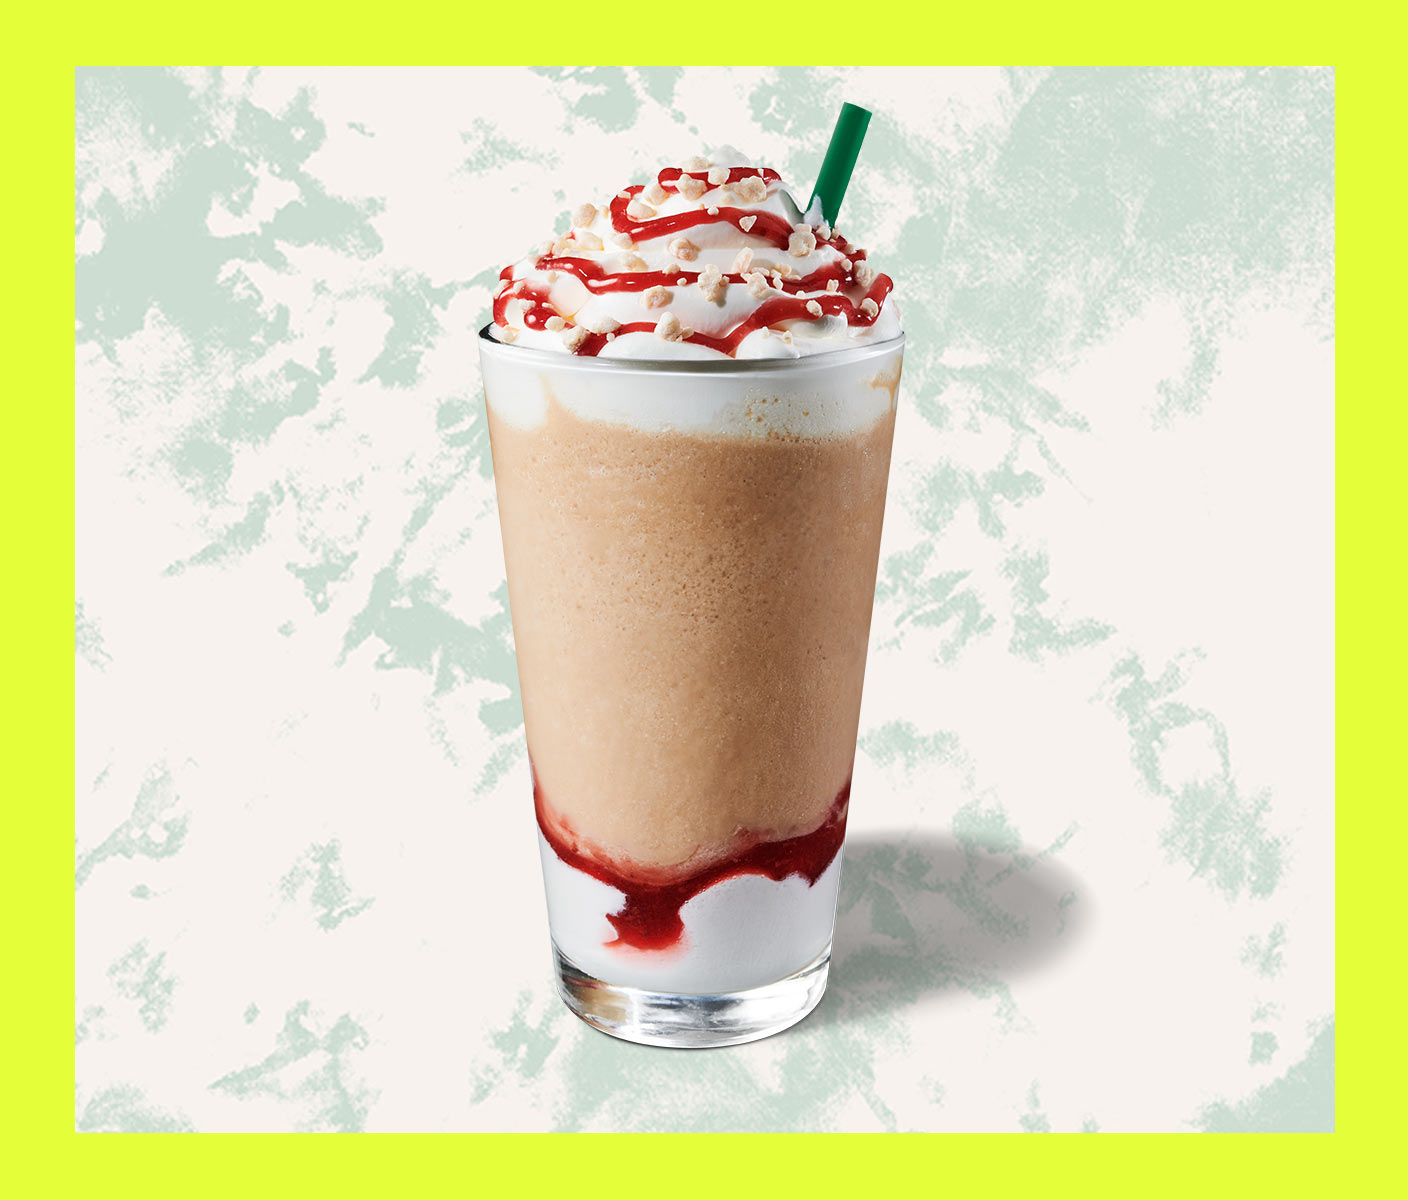 Blended coffee drink with whip cream and strawberry topping in a tall glass.